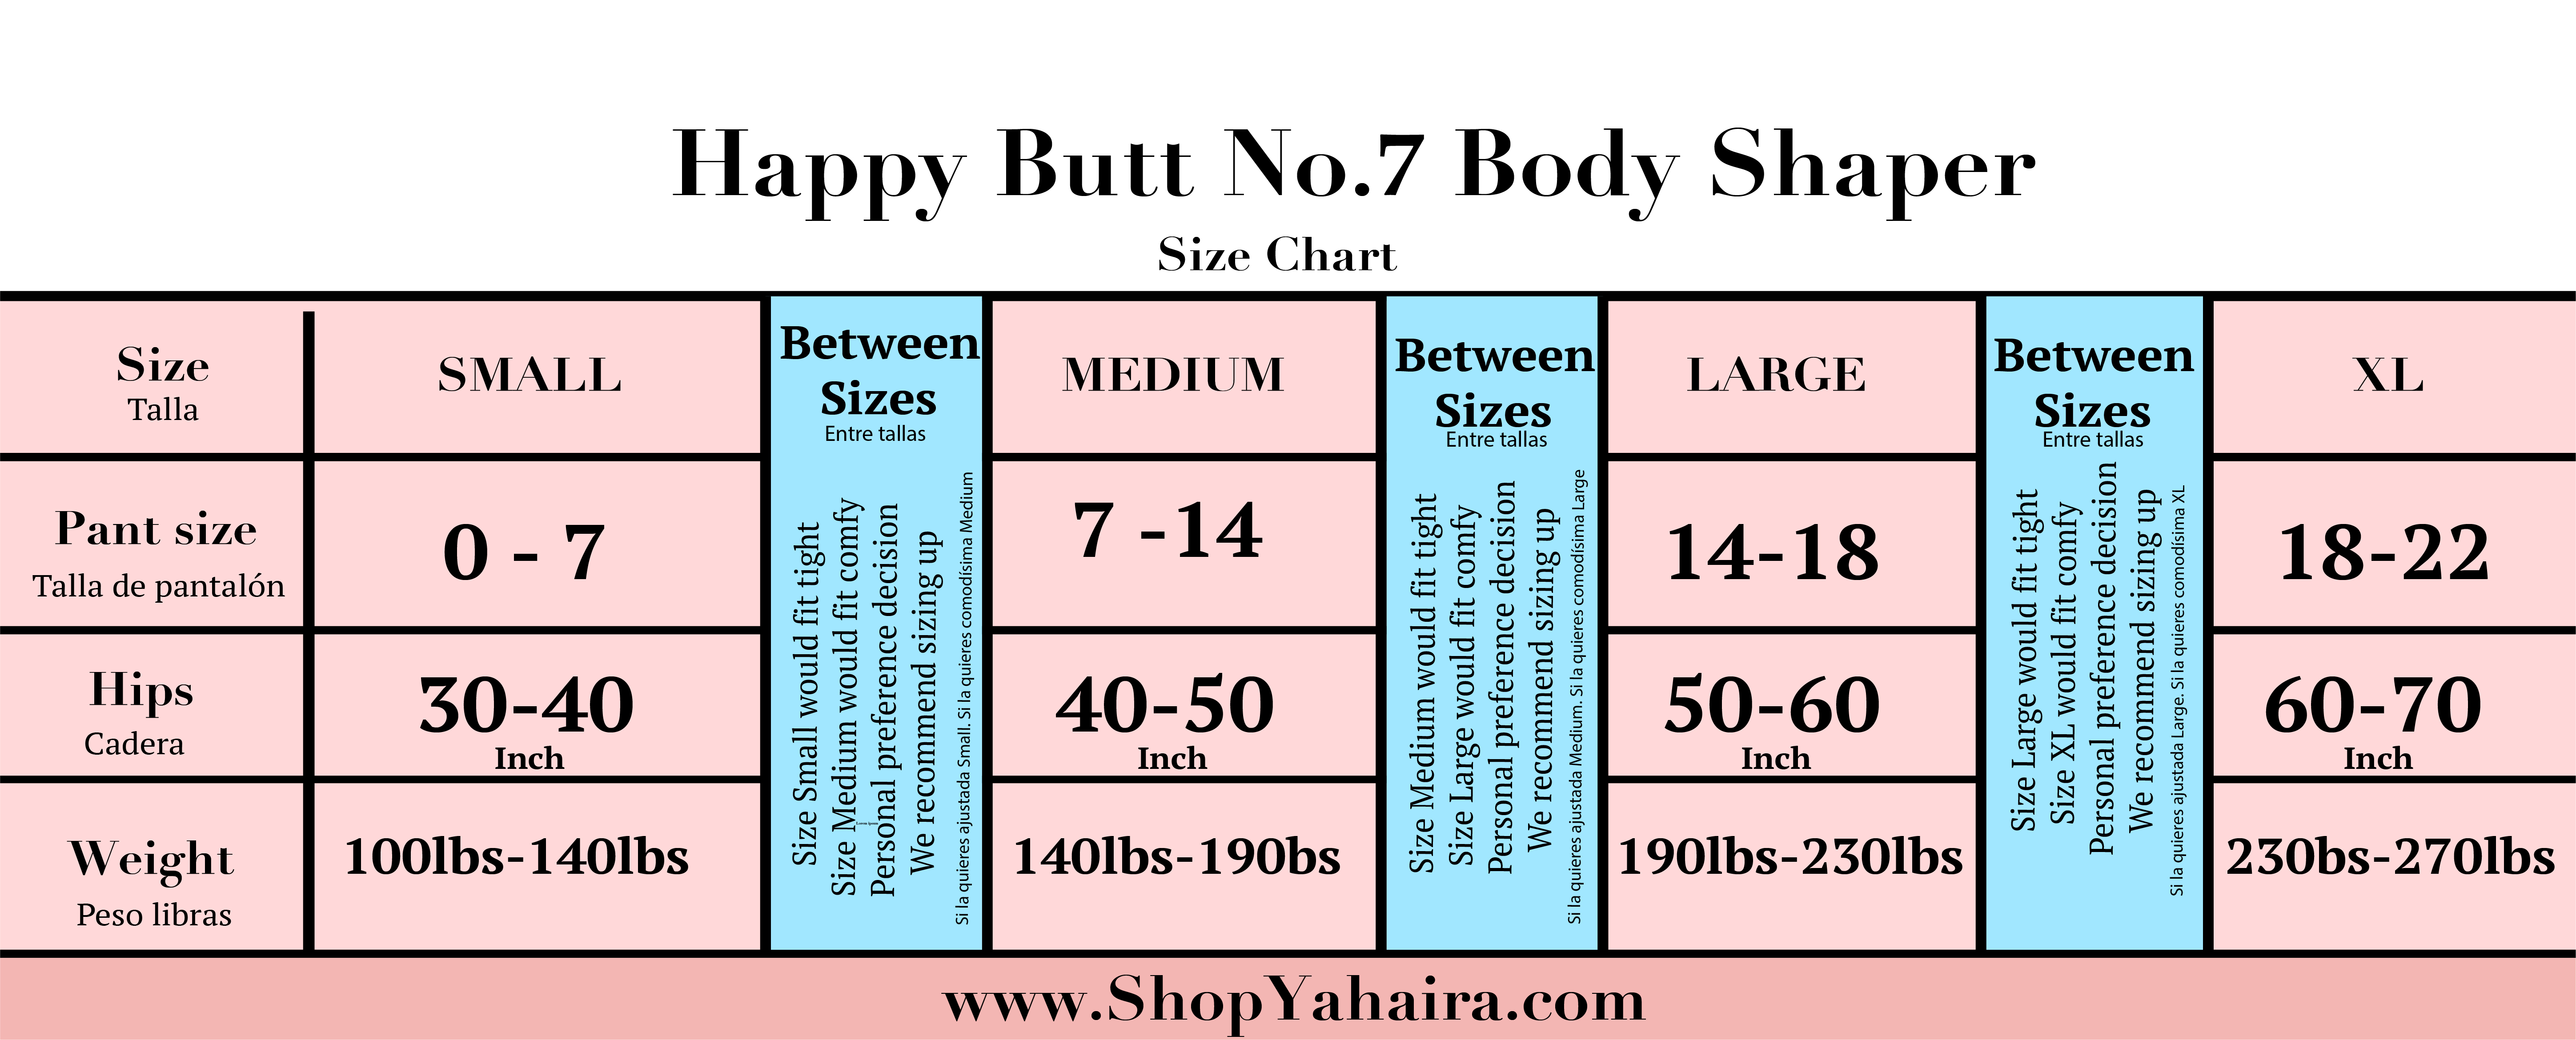 perfect-size-chart-hb-11-24-17.jpg